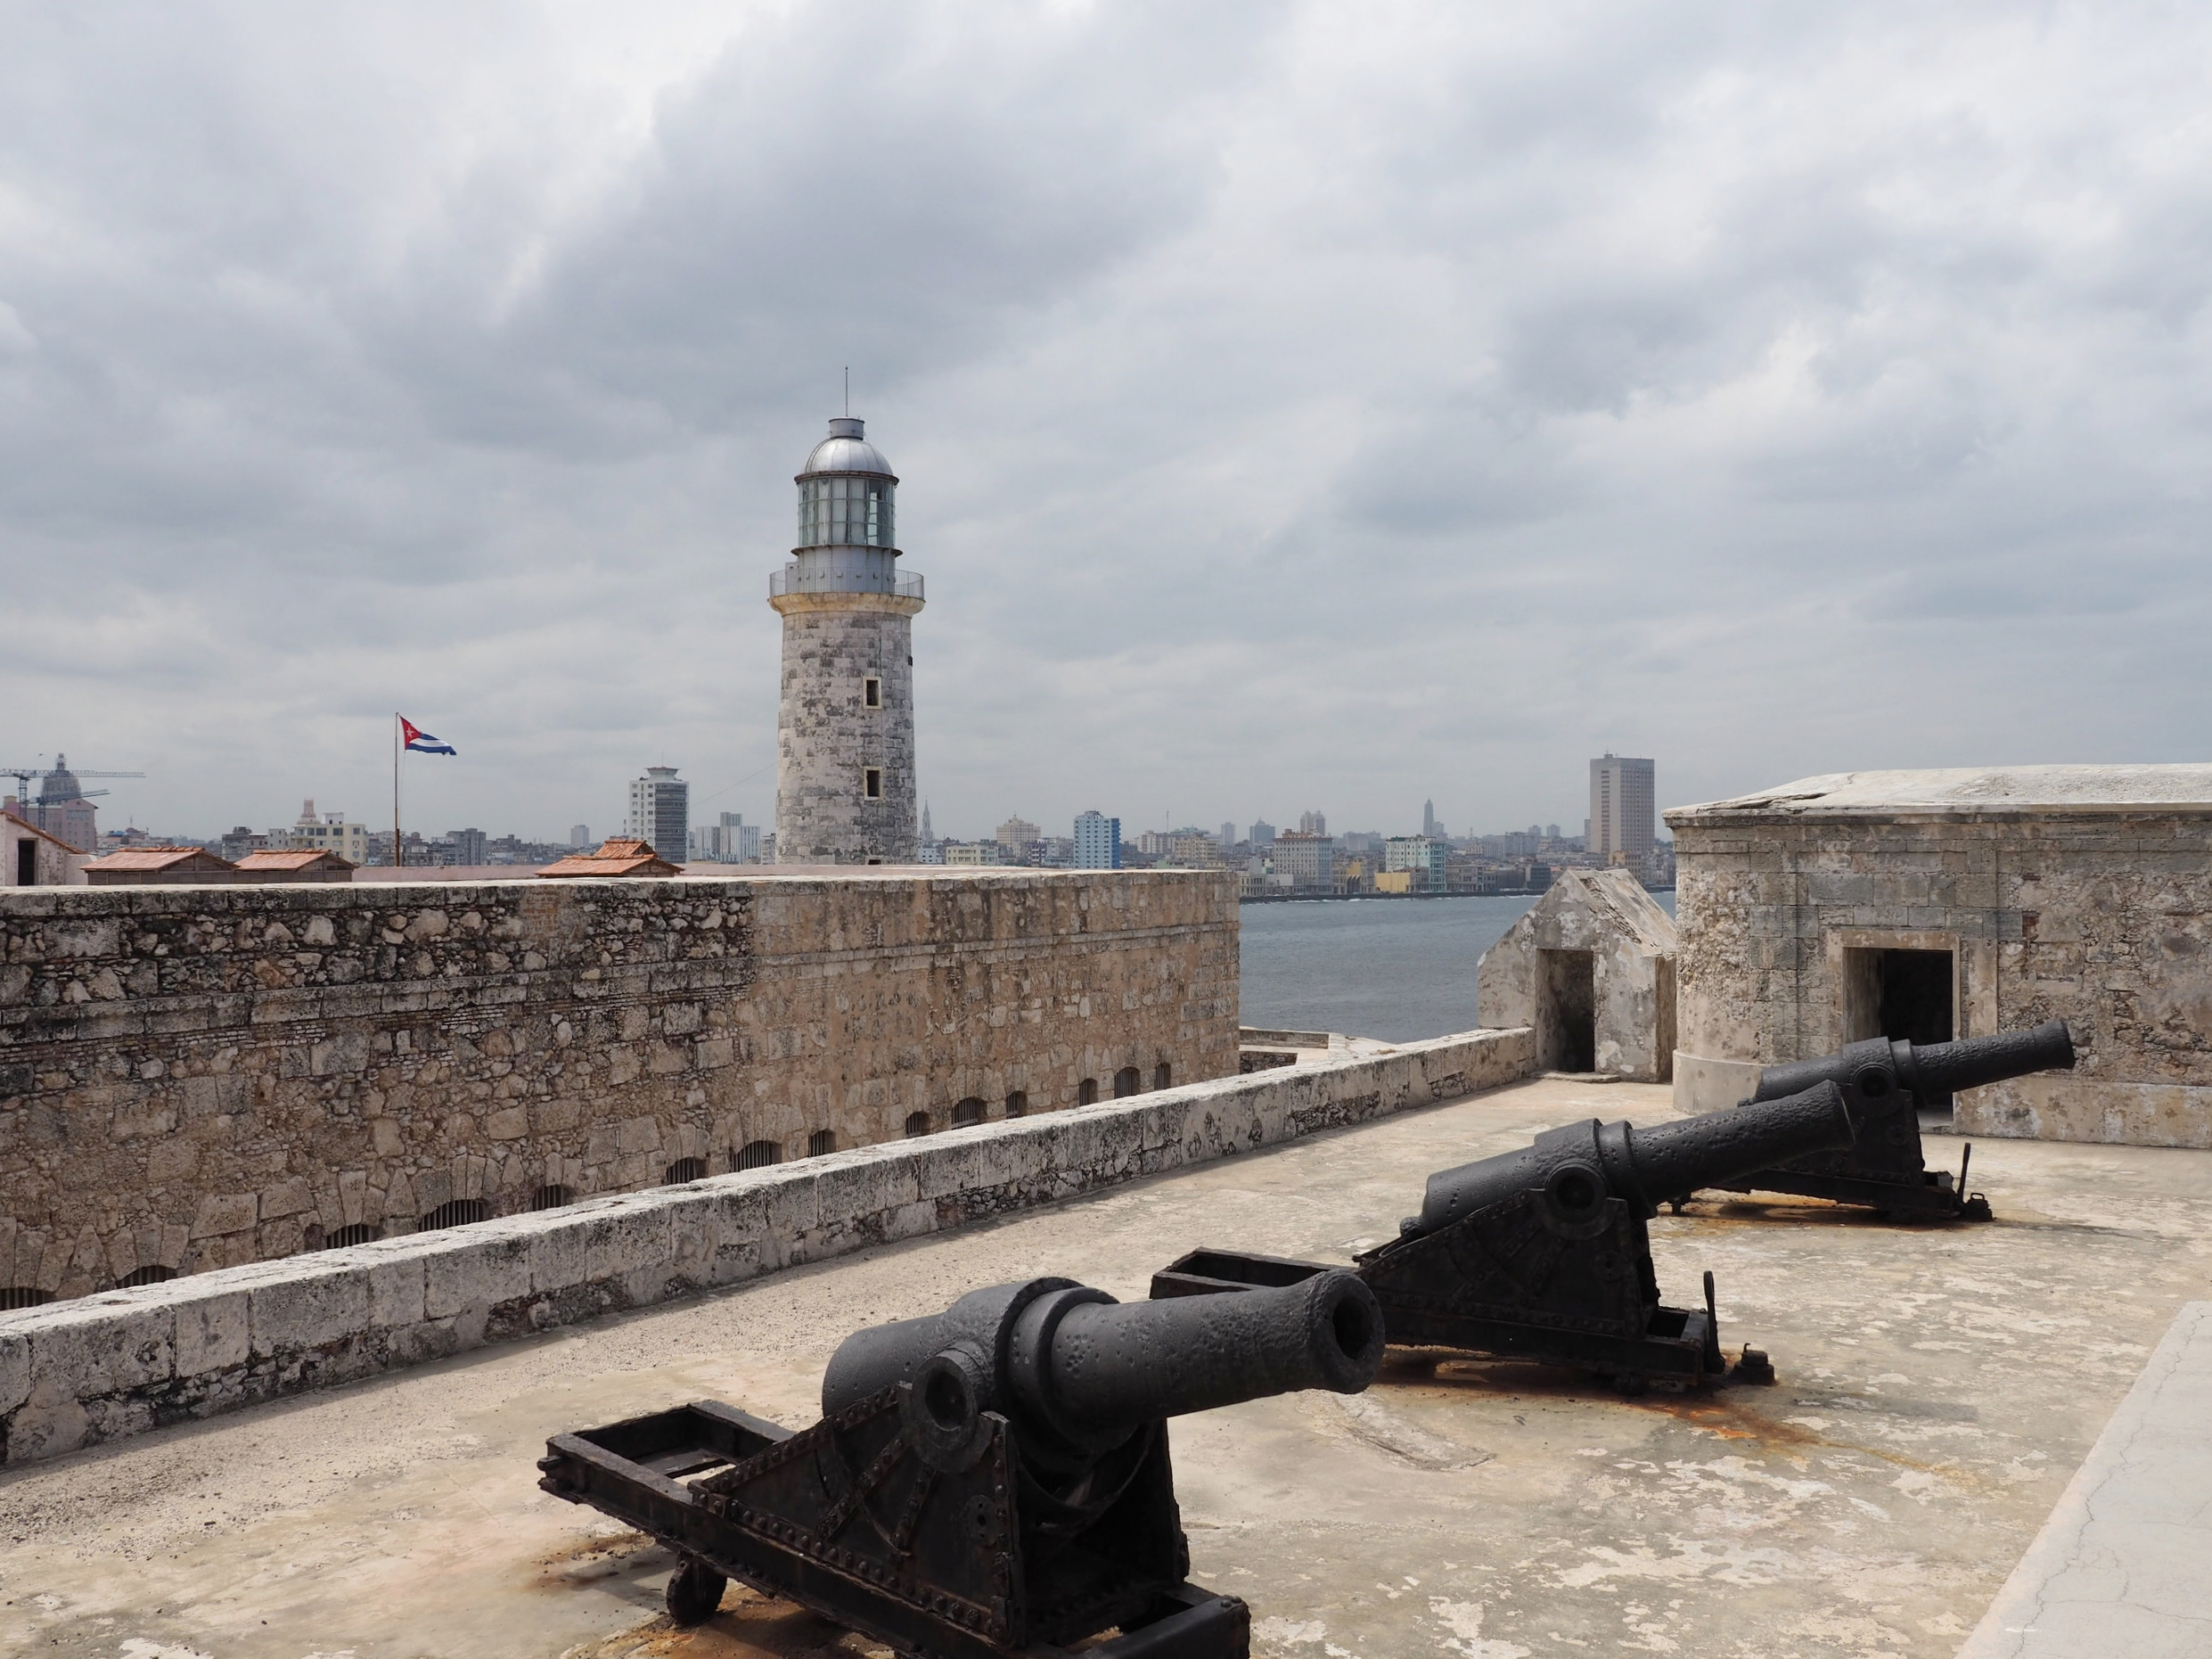 Cannons on top of El Morro